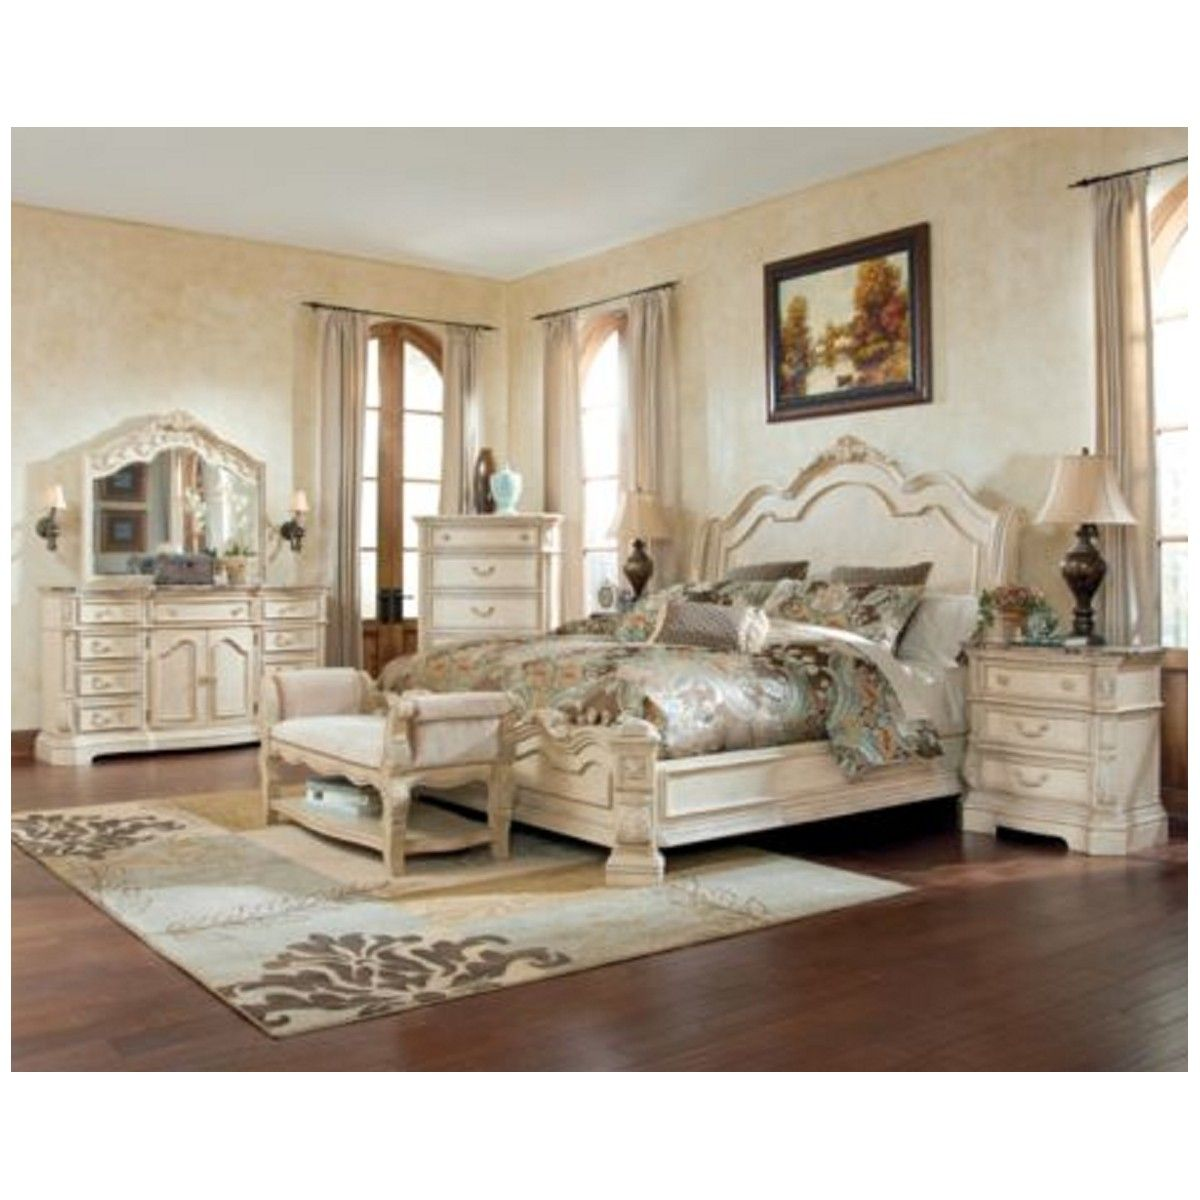 White Ashley Furniture Bedroom Sets White Bedroom Set Antique White Bedroom Furniture Ashley Furniture Bedroom